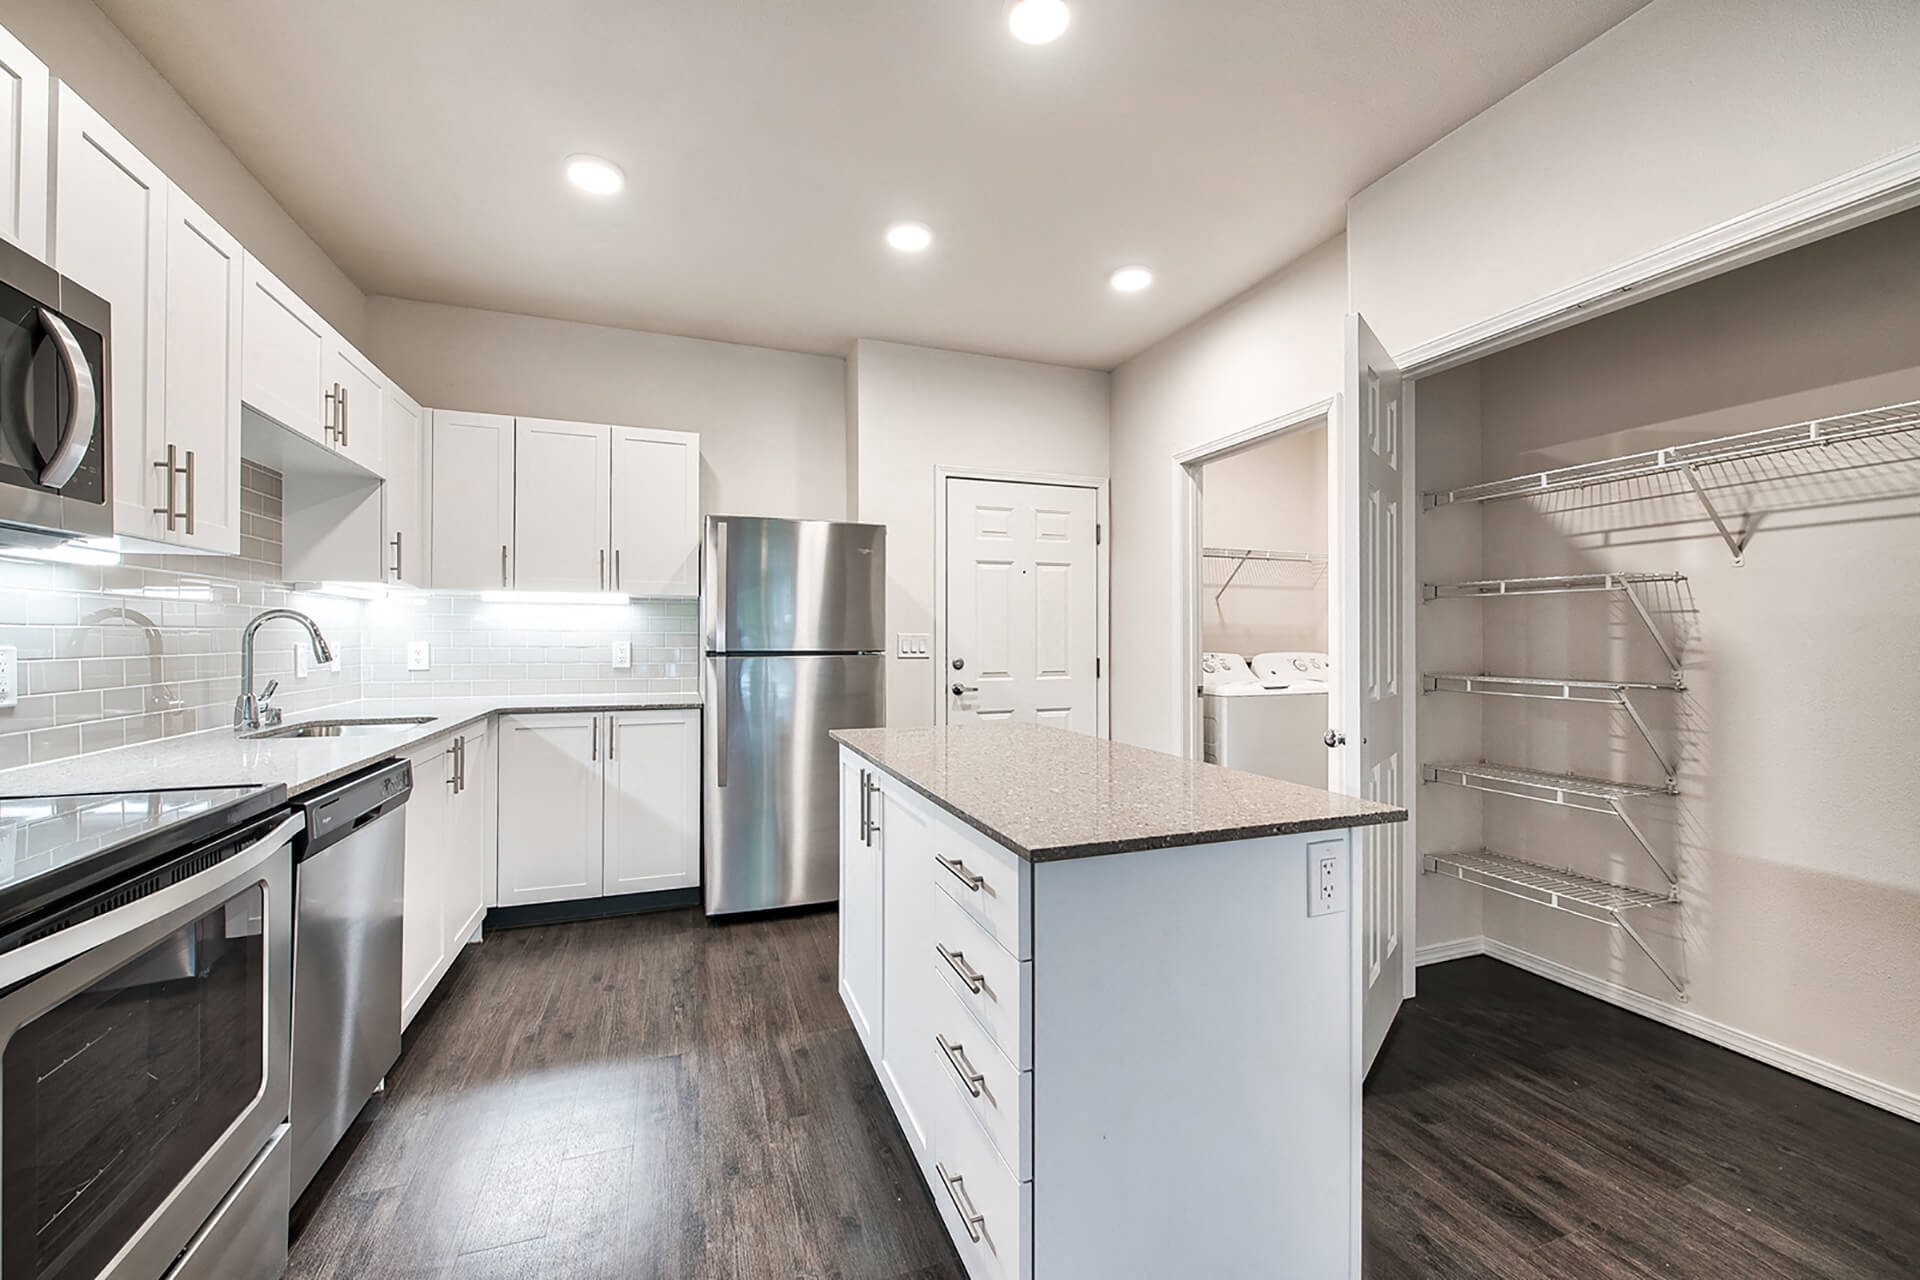 Eat-In Kitchen With Pantry at Reflections by Windsor, Redmond, Washington